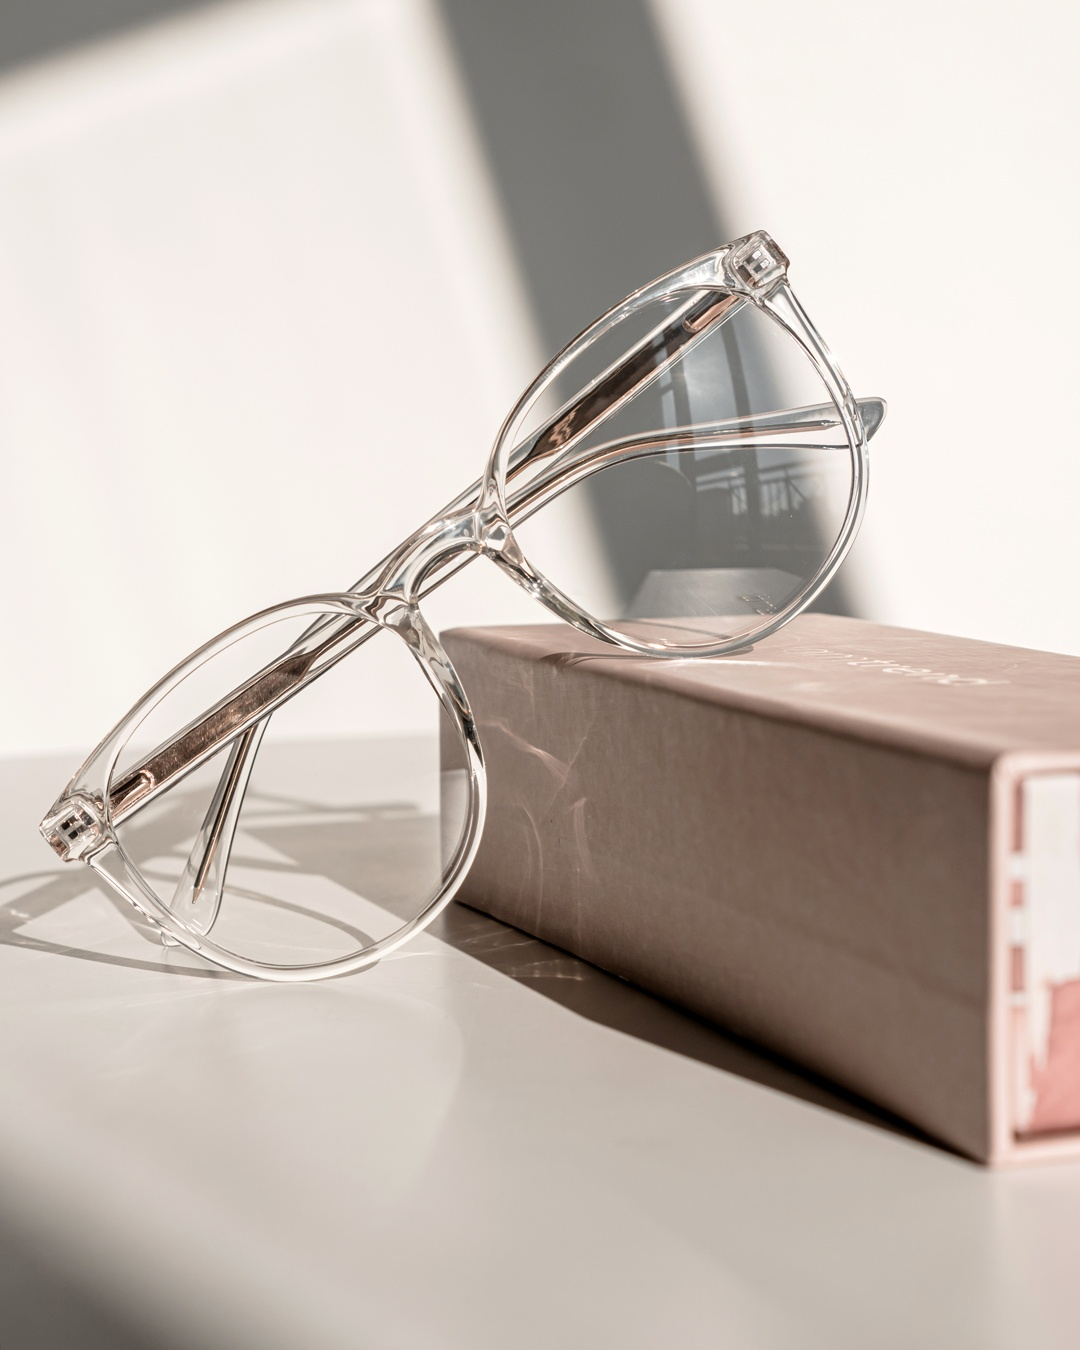 Oversized glasses with clear frames propped up against a pink iamtrend box.